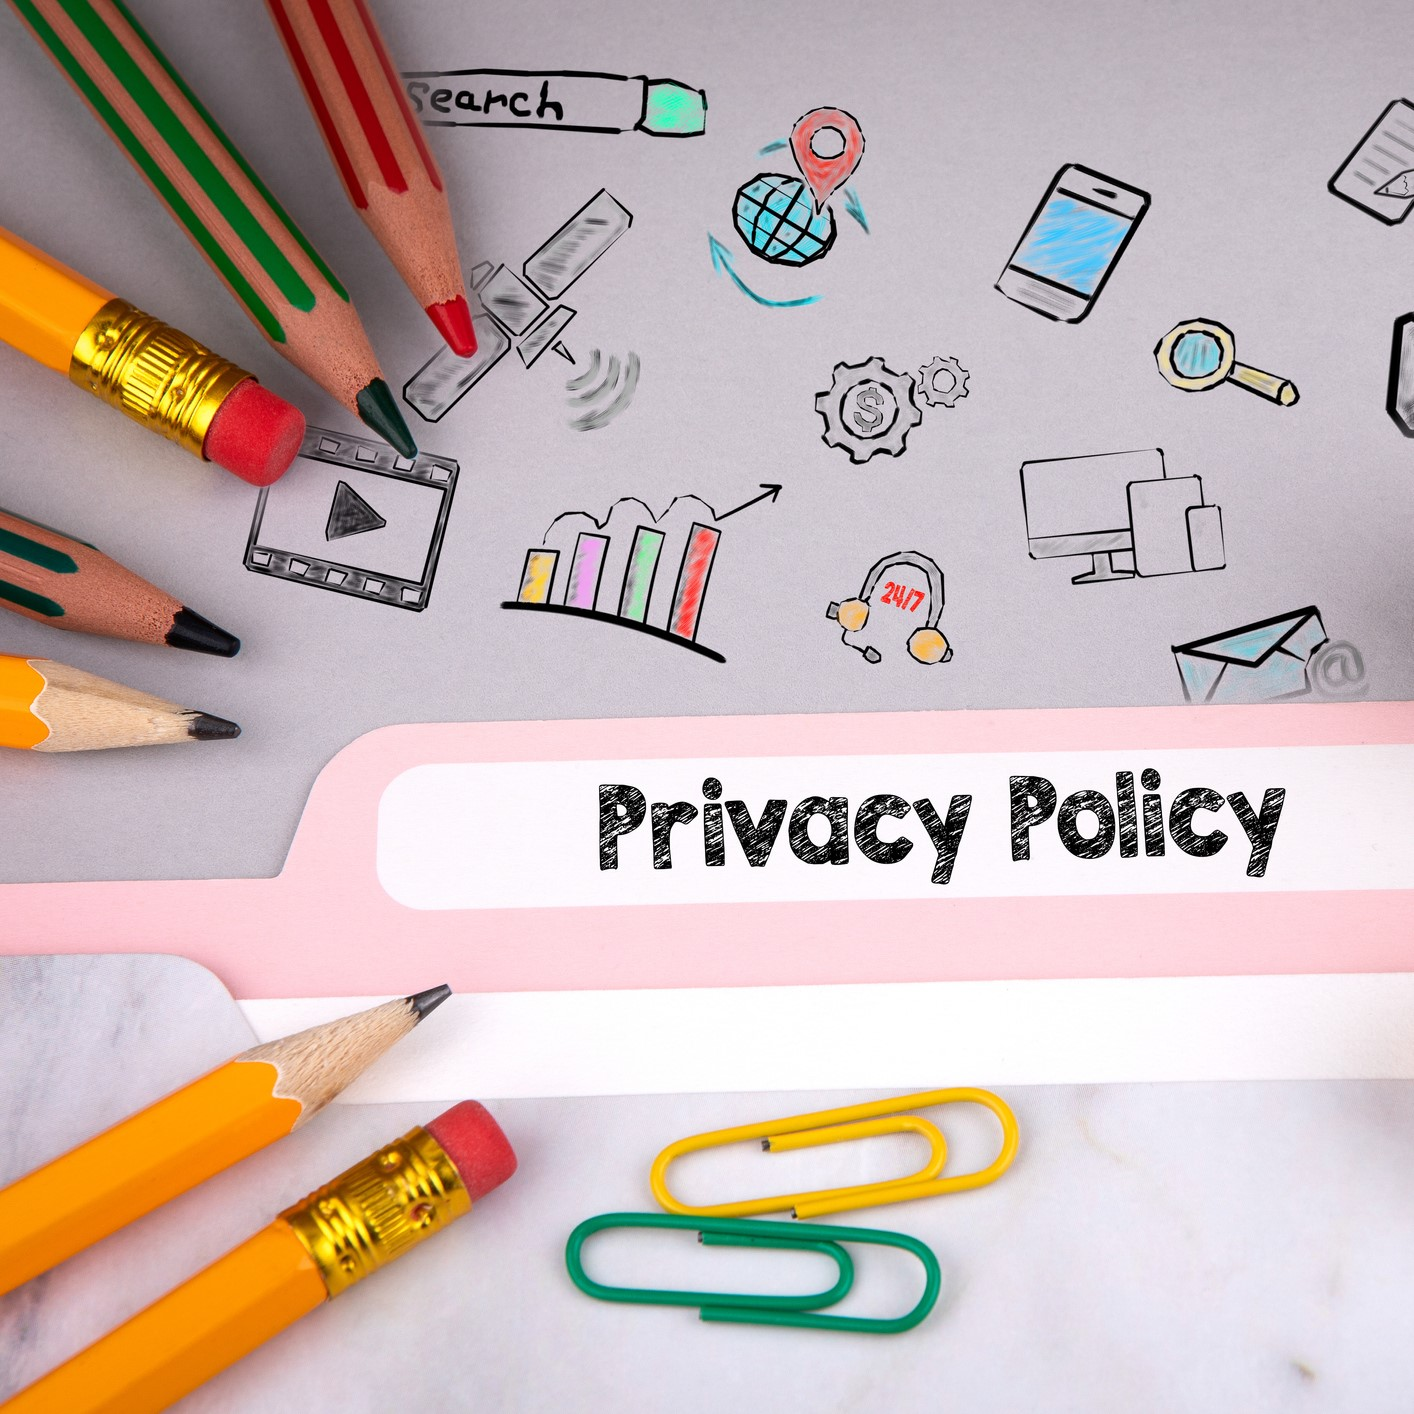 Privacy Policy concept, illustration and icons. Folder register on desk.